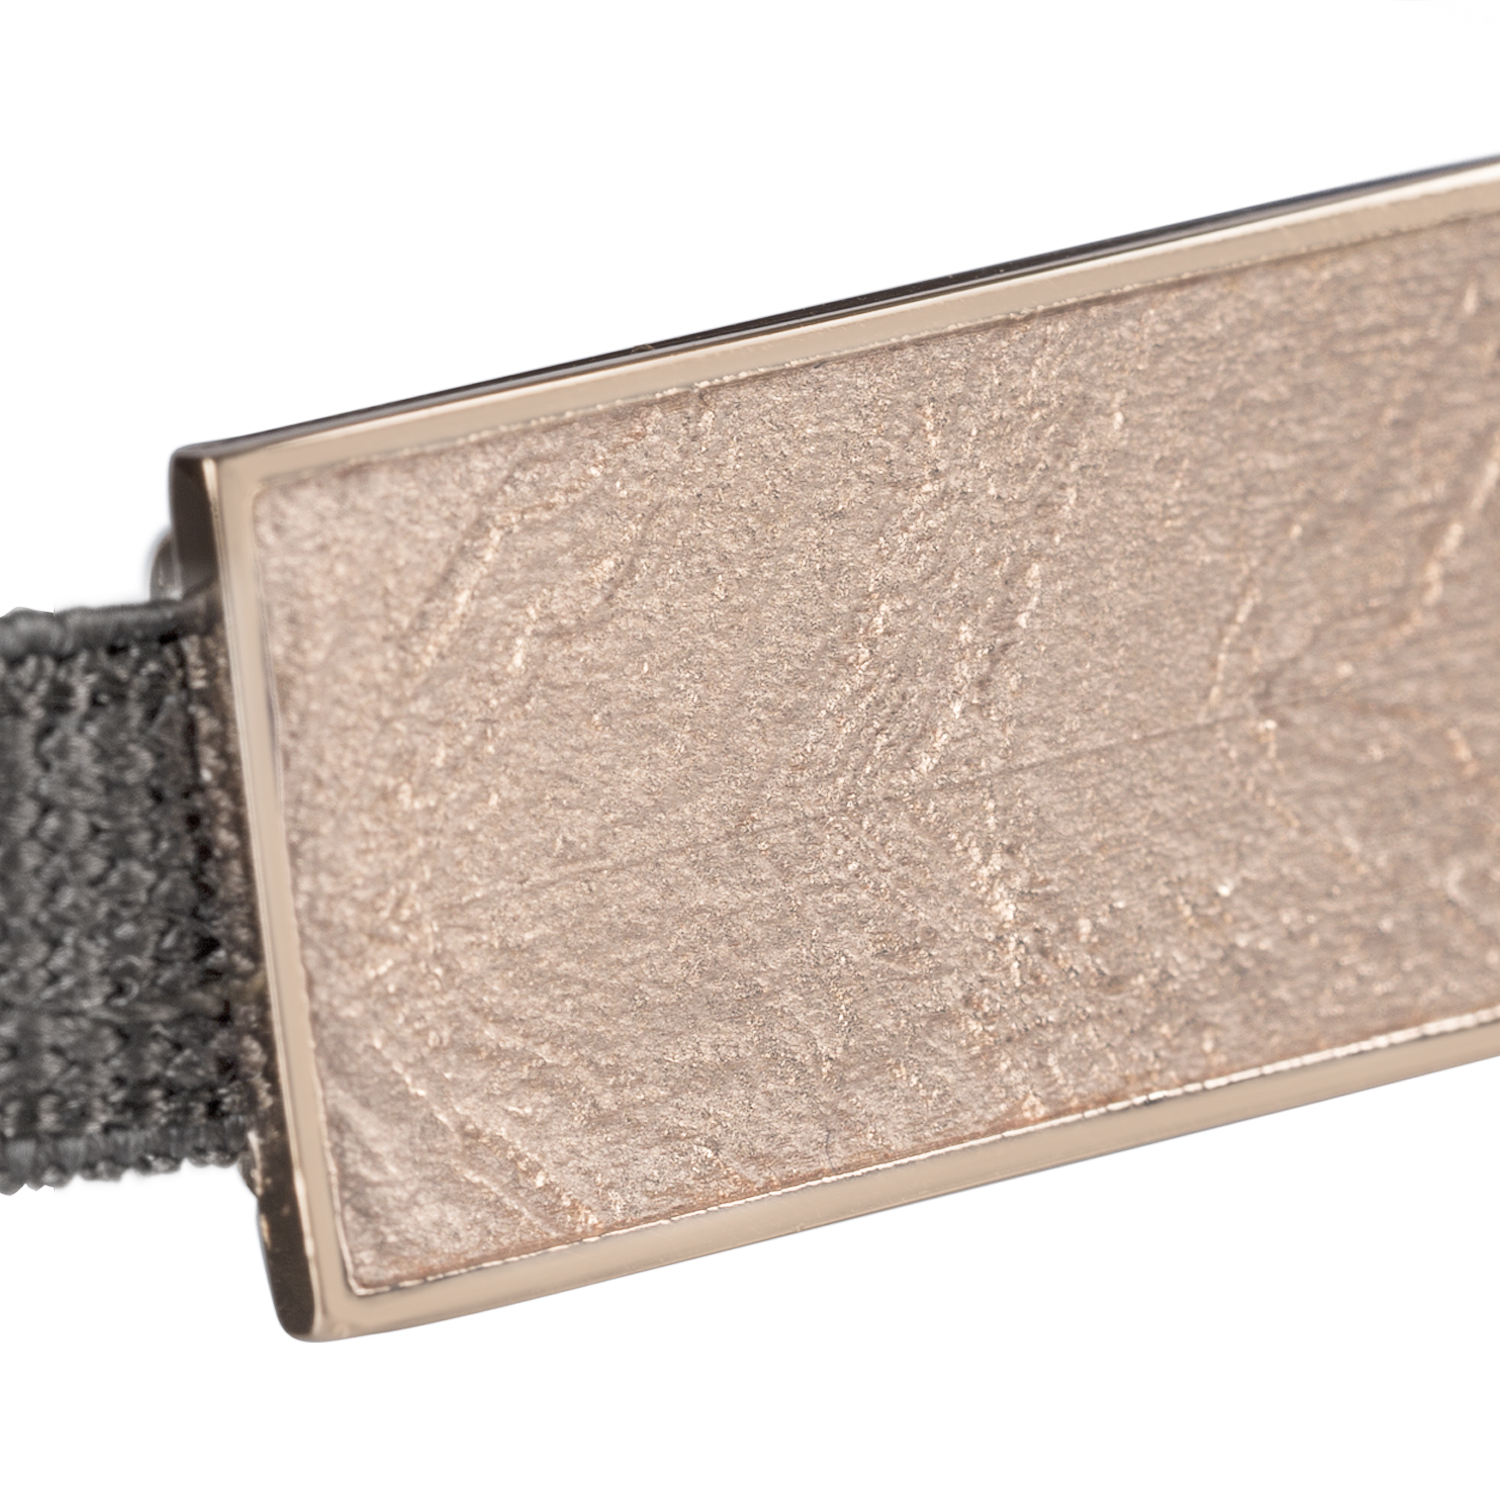 Mies bracelet in rose gold silver plated